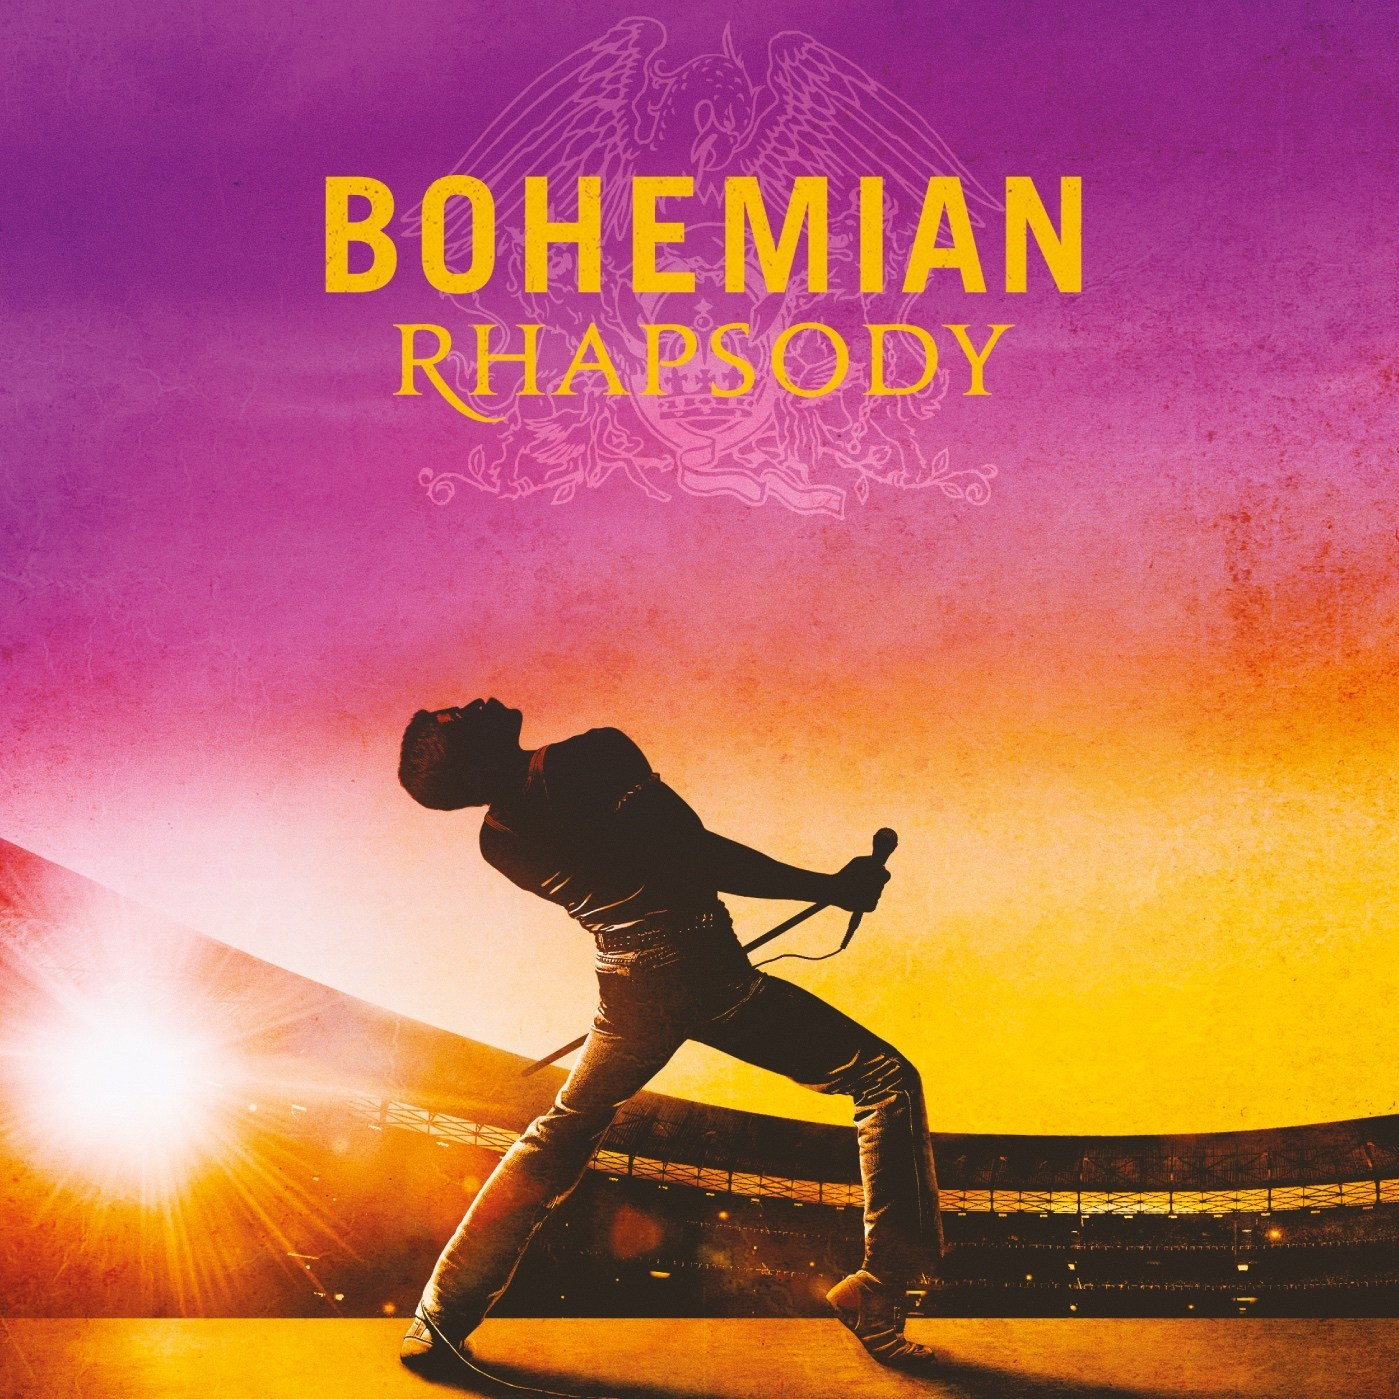 80s Rock Songs >> 70s & 80s Band Queen to Release 'Bohemian Rhapsody' Soundtrack | Like Totally 80s